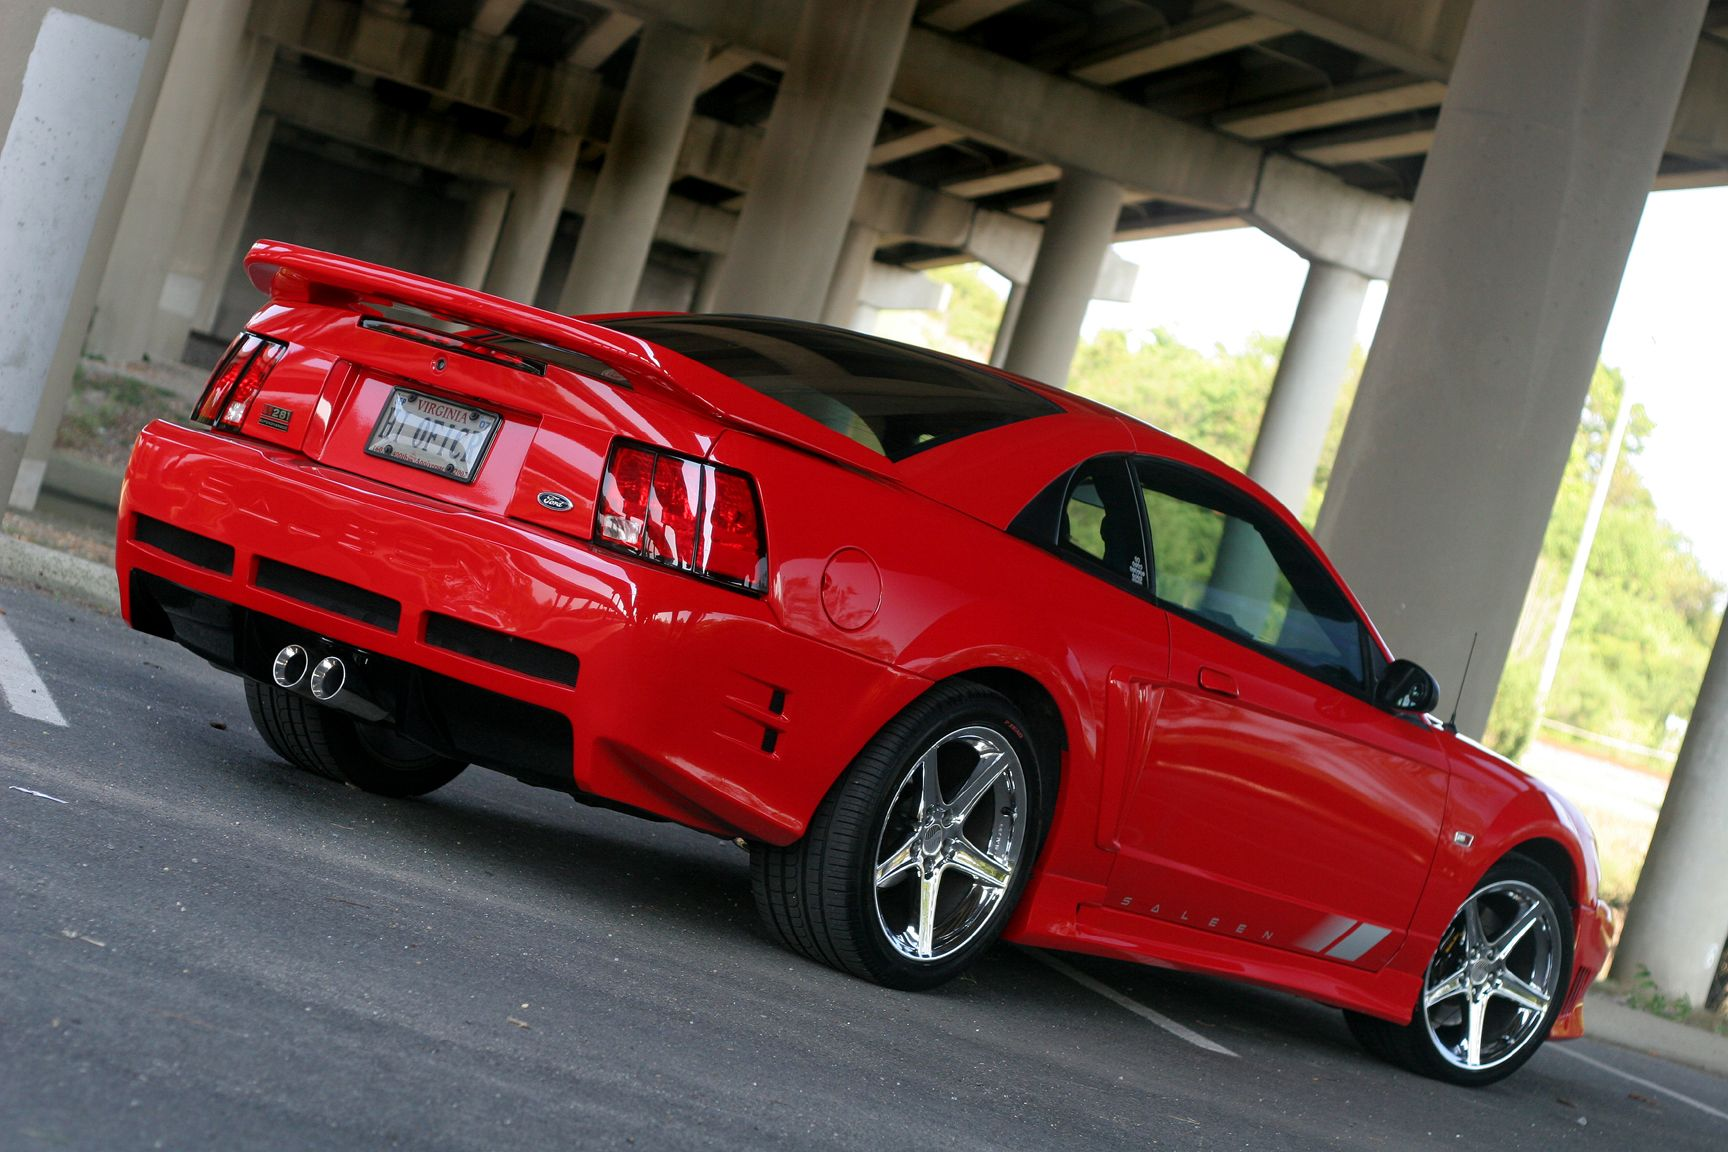 Torch Red 2004 Saleen S281 Sc 2004 Ford Mustang Saleen Mustang Ford Mustang Saleen